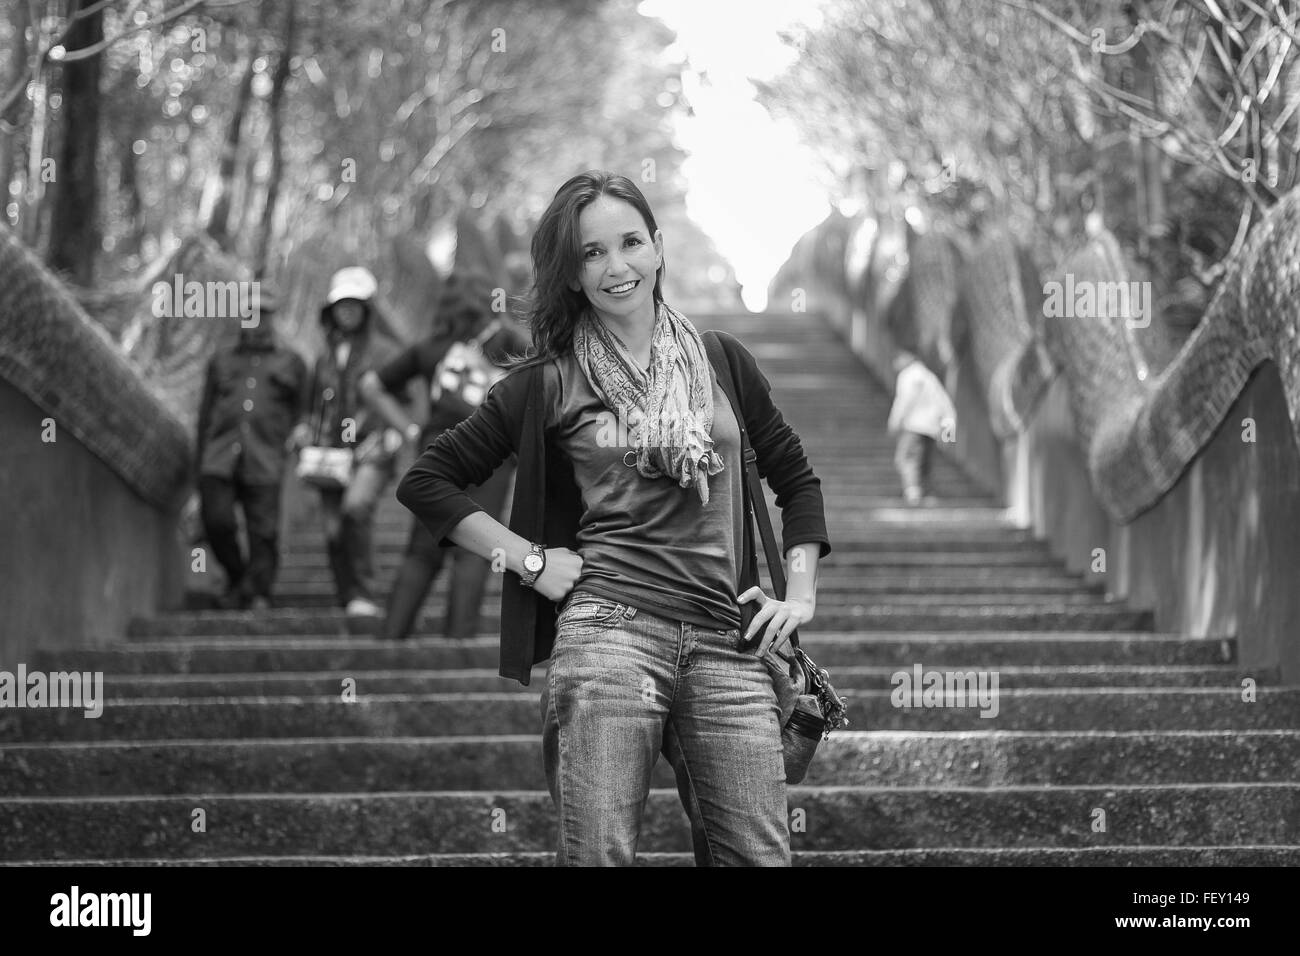 Portrait Of Mid Adult Woman In Casuals With Standing On Steps - Stock Image